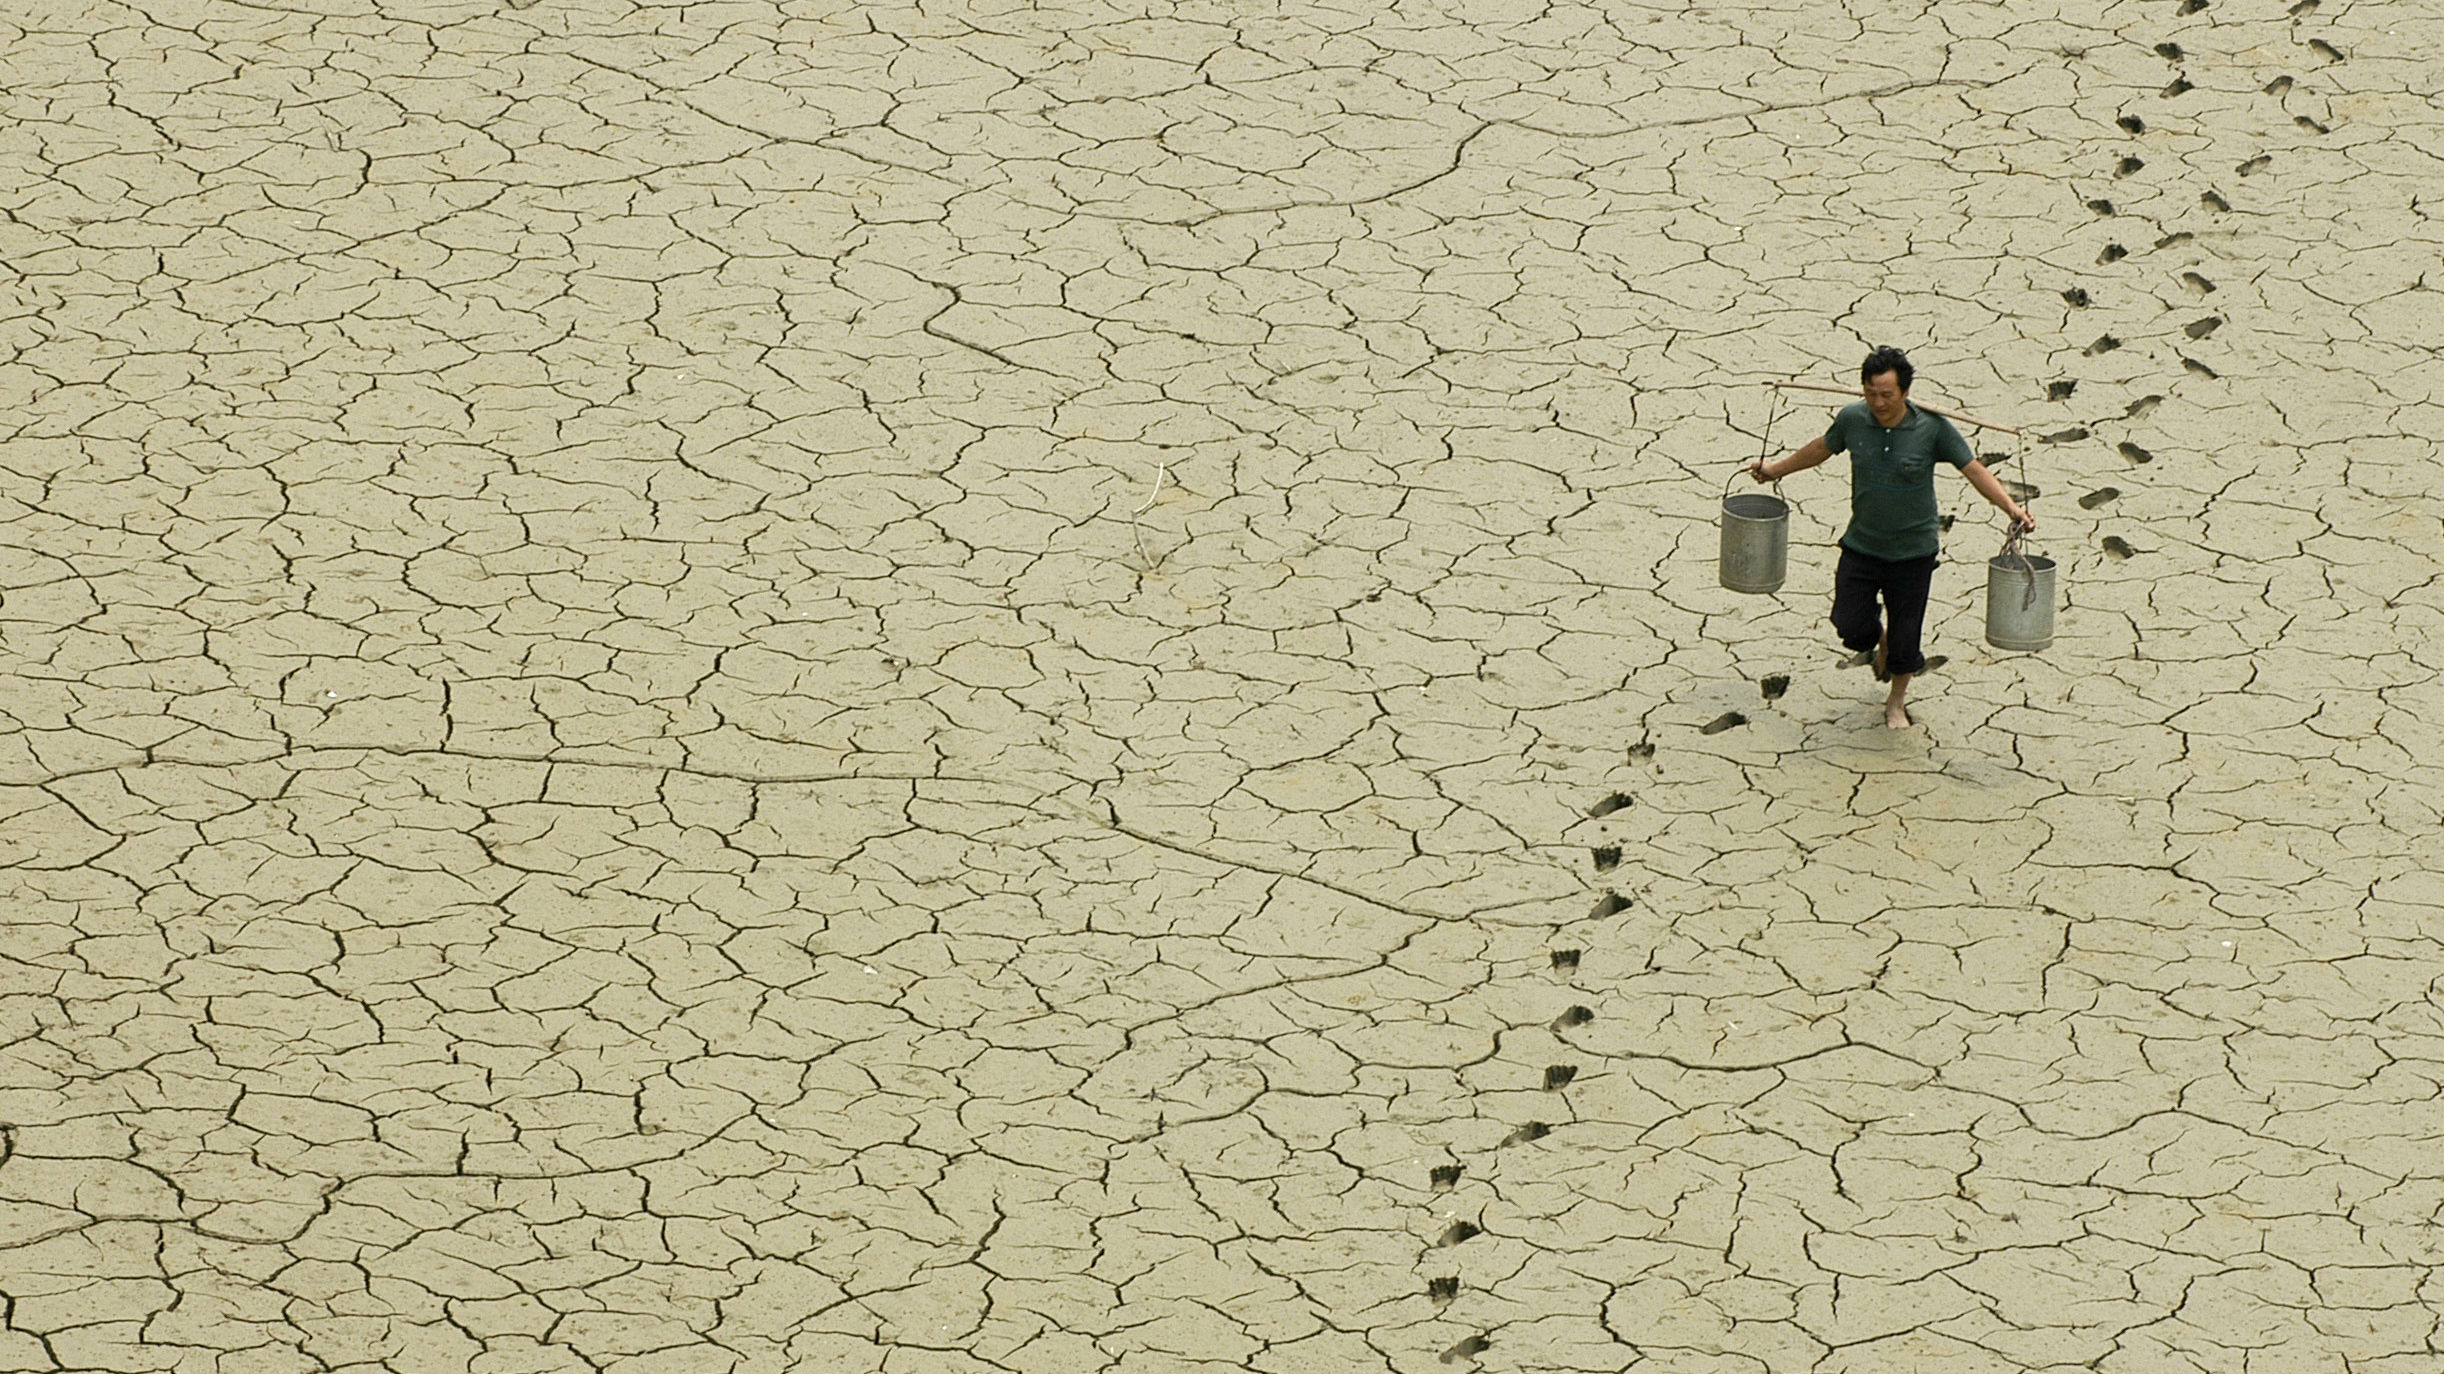 A farmer walks on a dried-up pond on the outskirts of Baokang, central China's Hubei province, June 10, 2007.